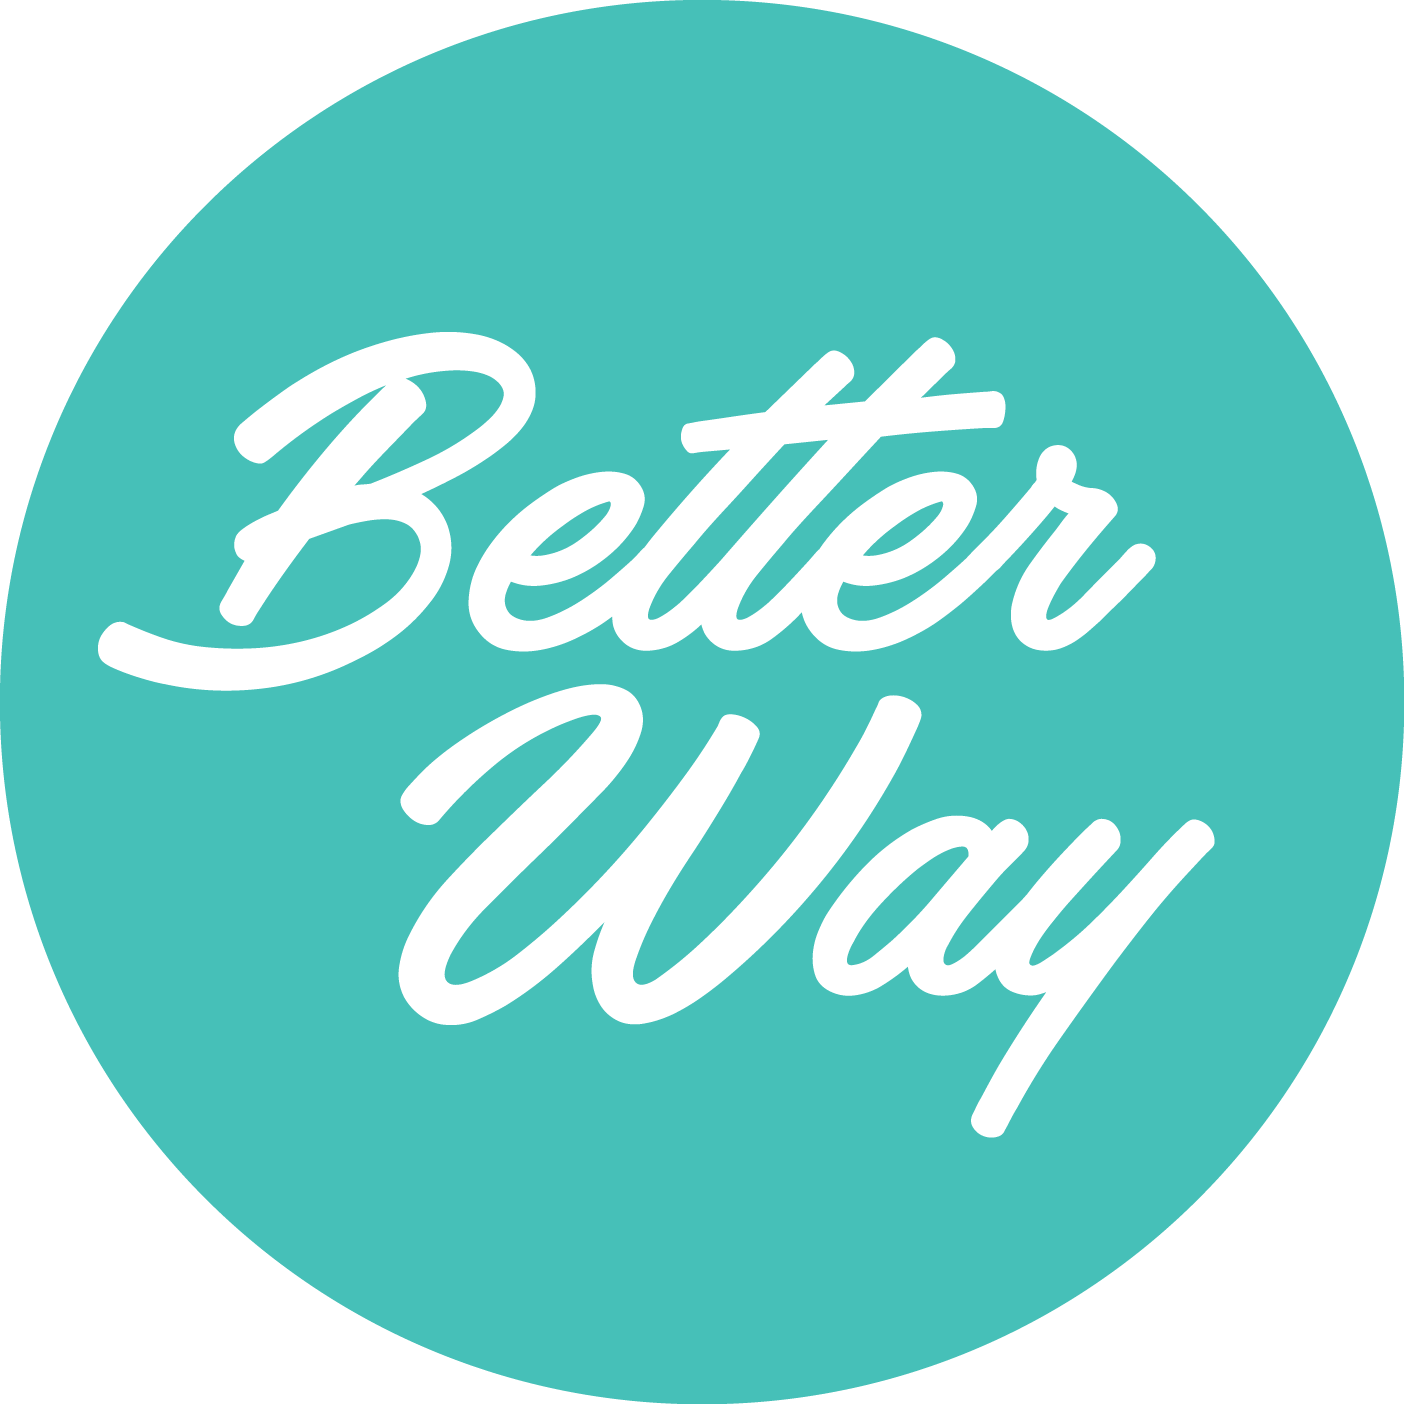 Better Way Ltd